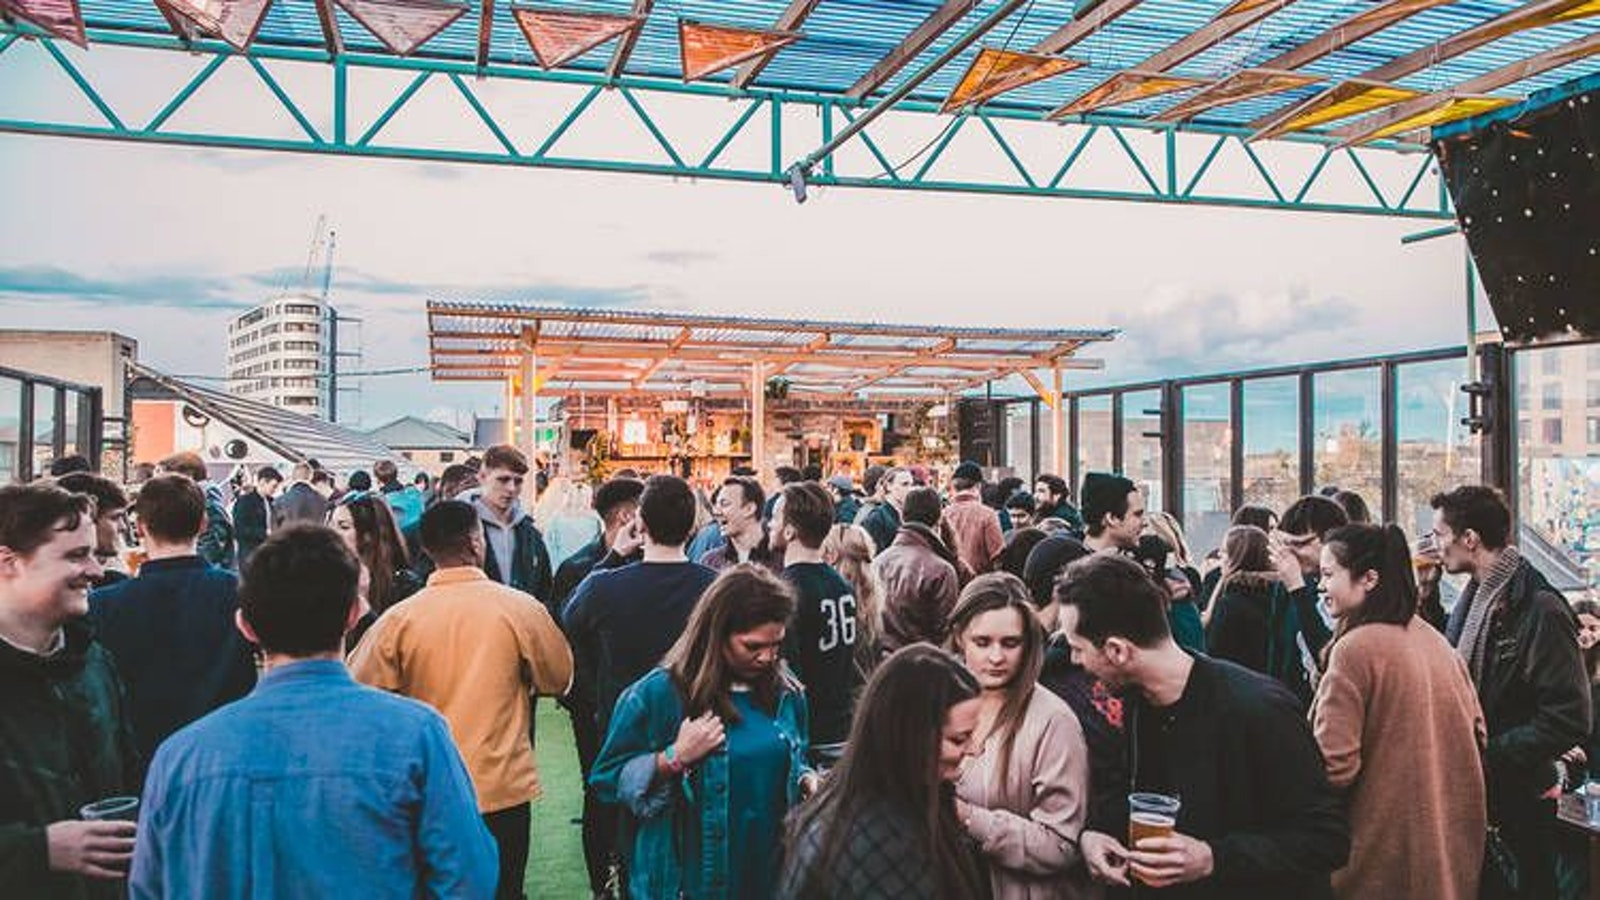 Dalston's End of Summer Roof party with Byday Bynight